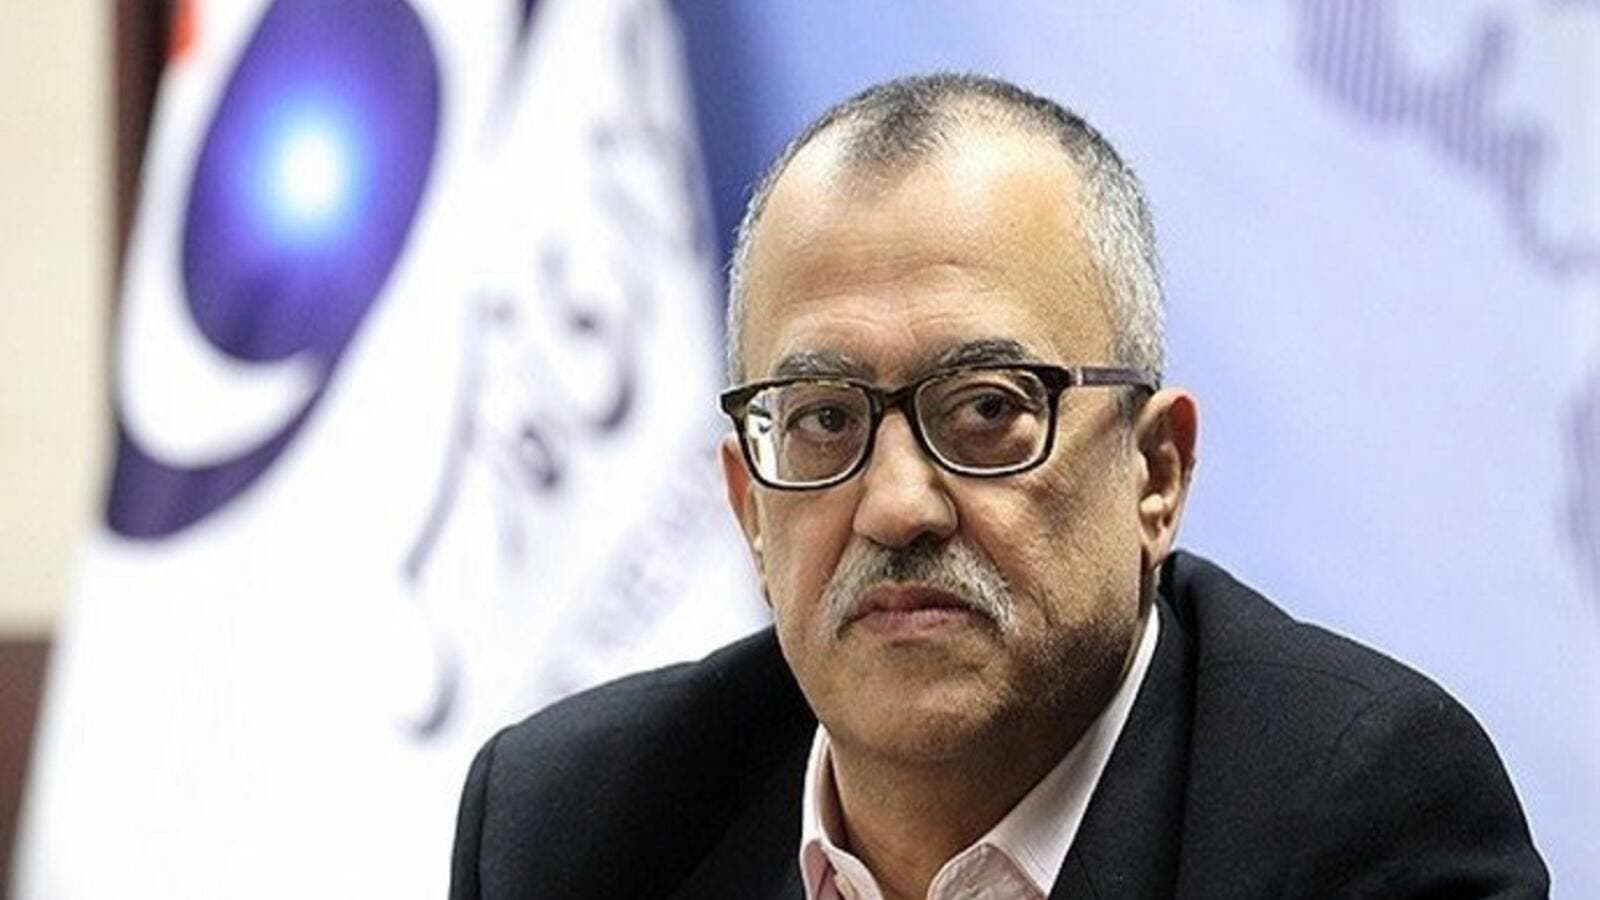 Jordanian writer Nahed Hattar was assassinated in Amman on Sept. 25, 2016. (Twitter)